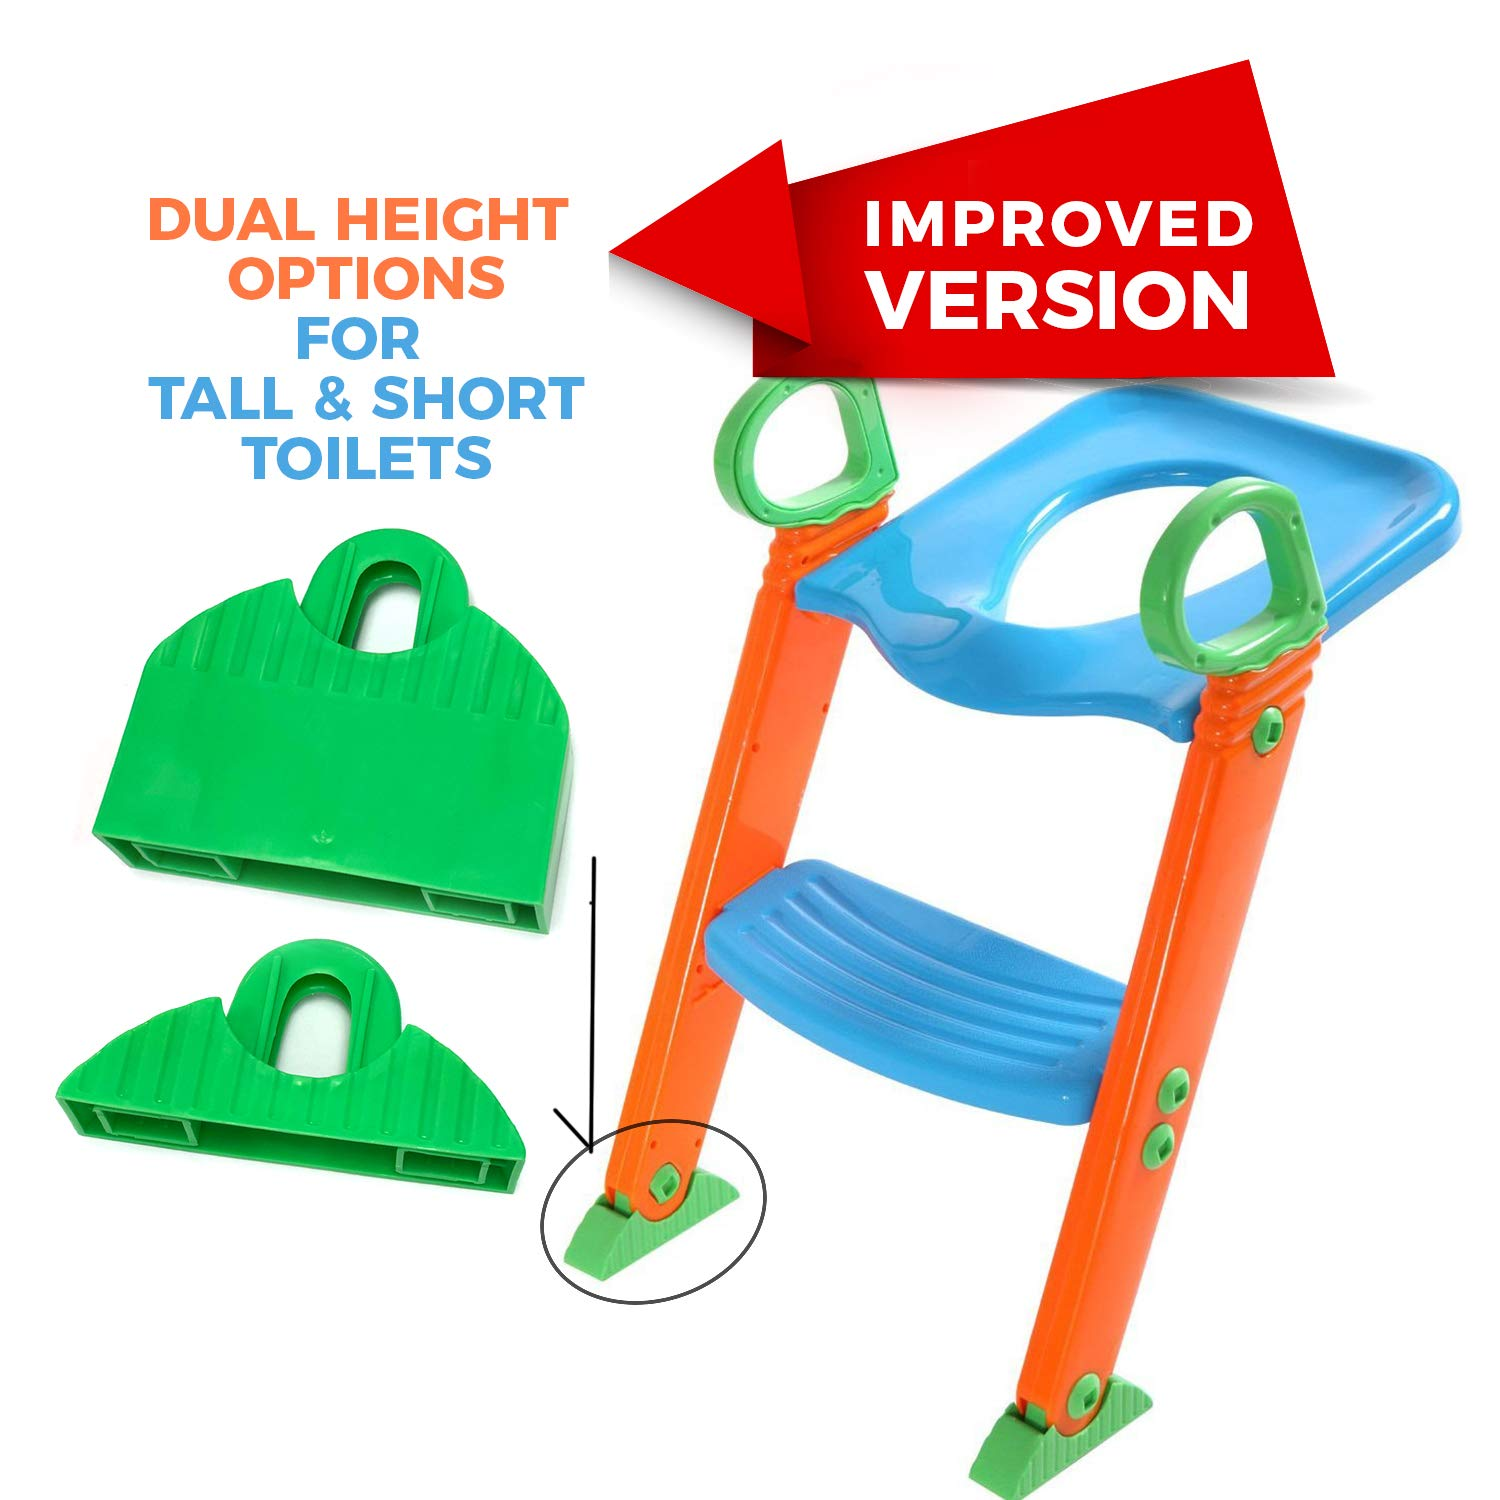 Potty Toilet Seat with Step Stool ladder, (3 in 1) Trainer for Kids Toddlers W/ Handles. Sturdy, Comfortable, Safe, Built In Non-Slip Steps W/ Anti-Slip Pads. Excellent Potty Seat Step Boys Girls Baby by Alayna (Image #3)